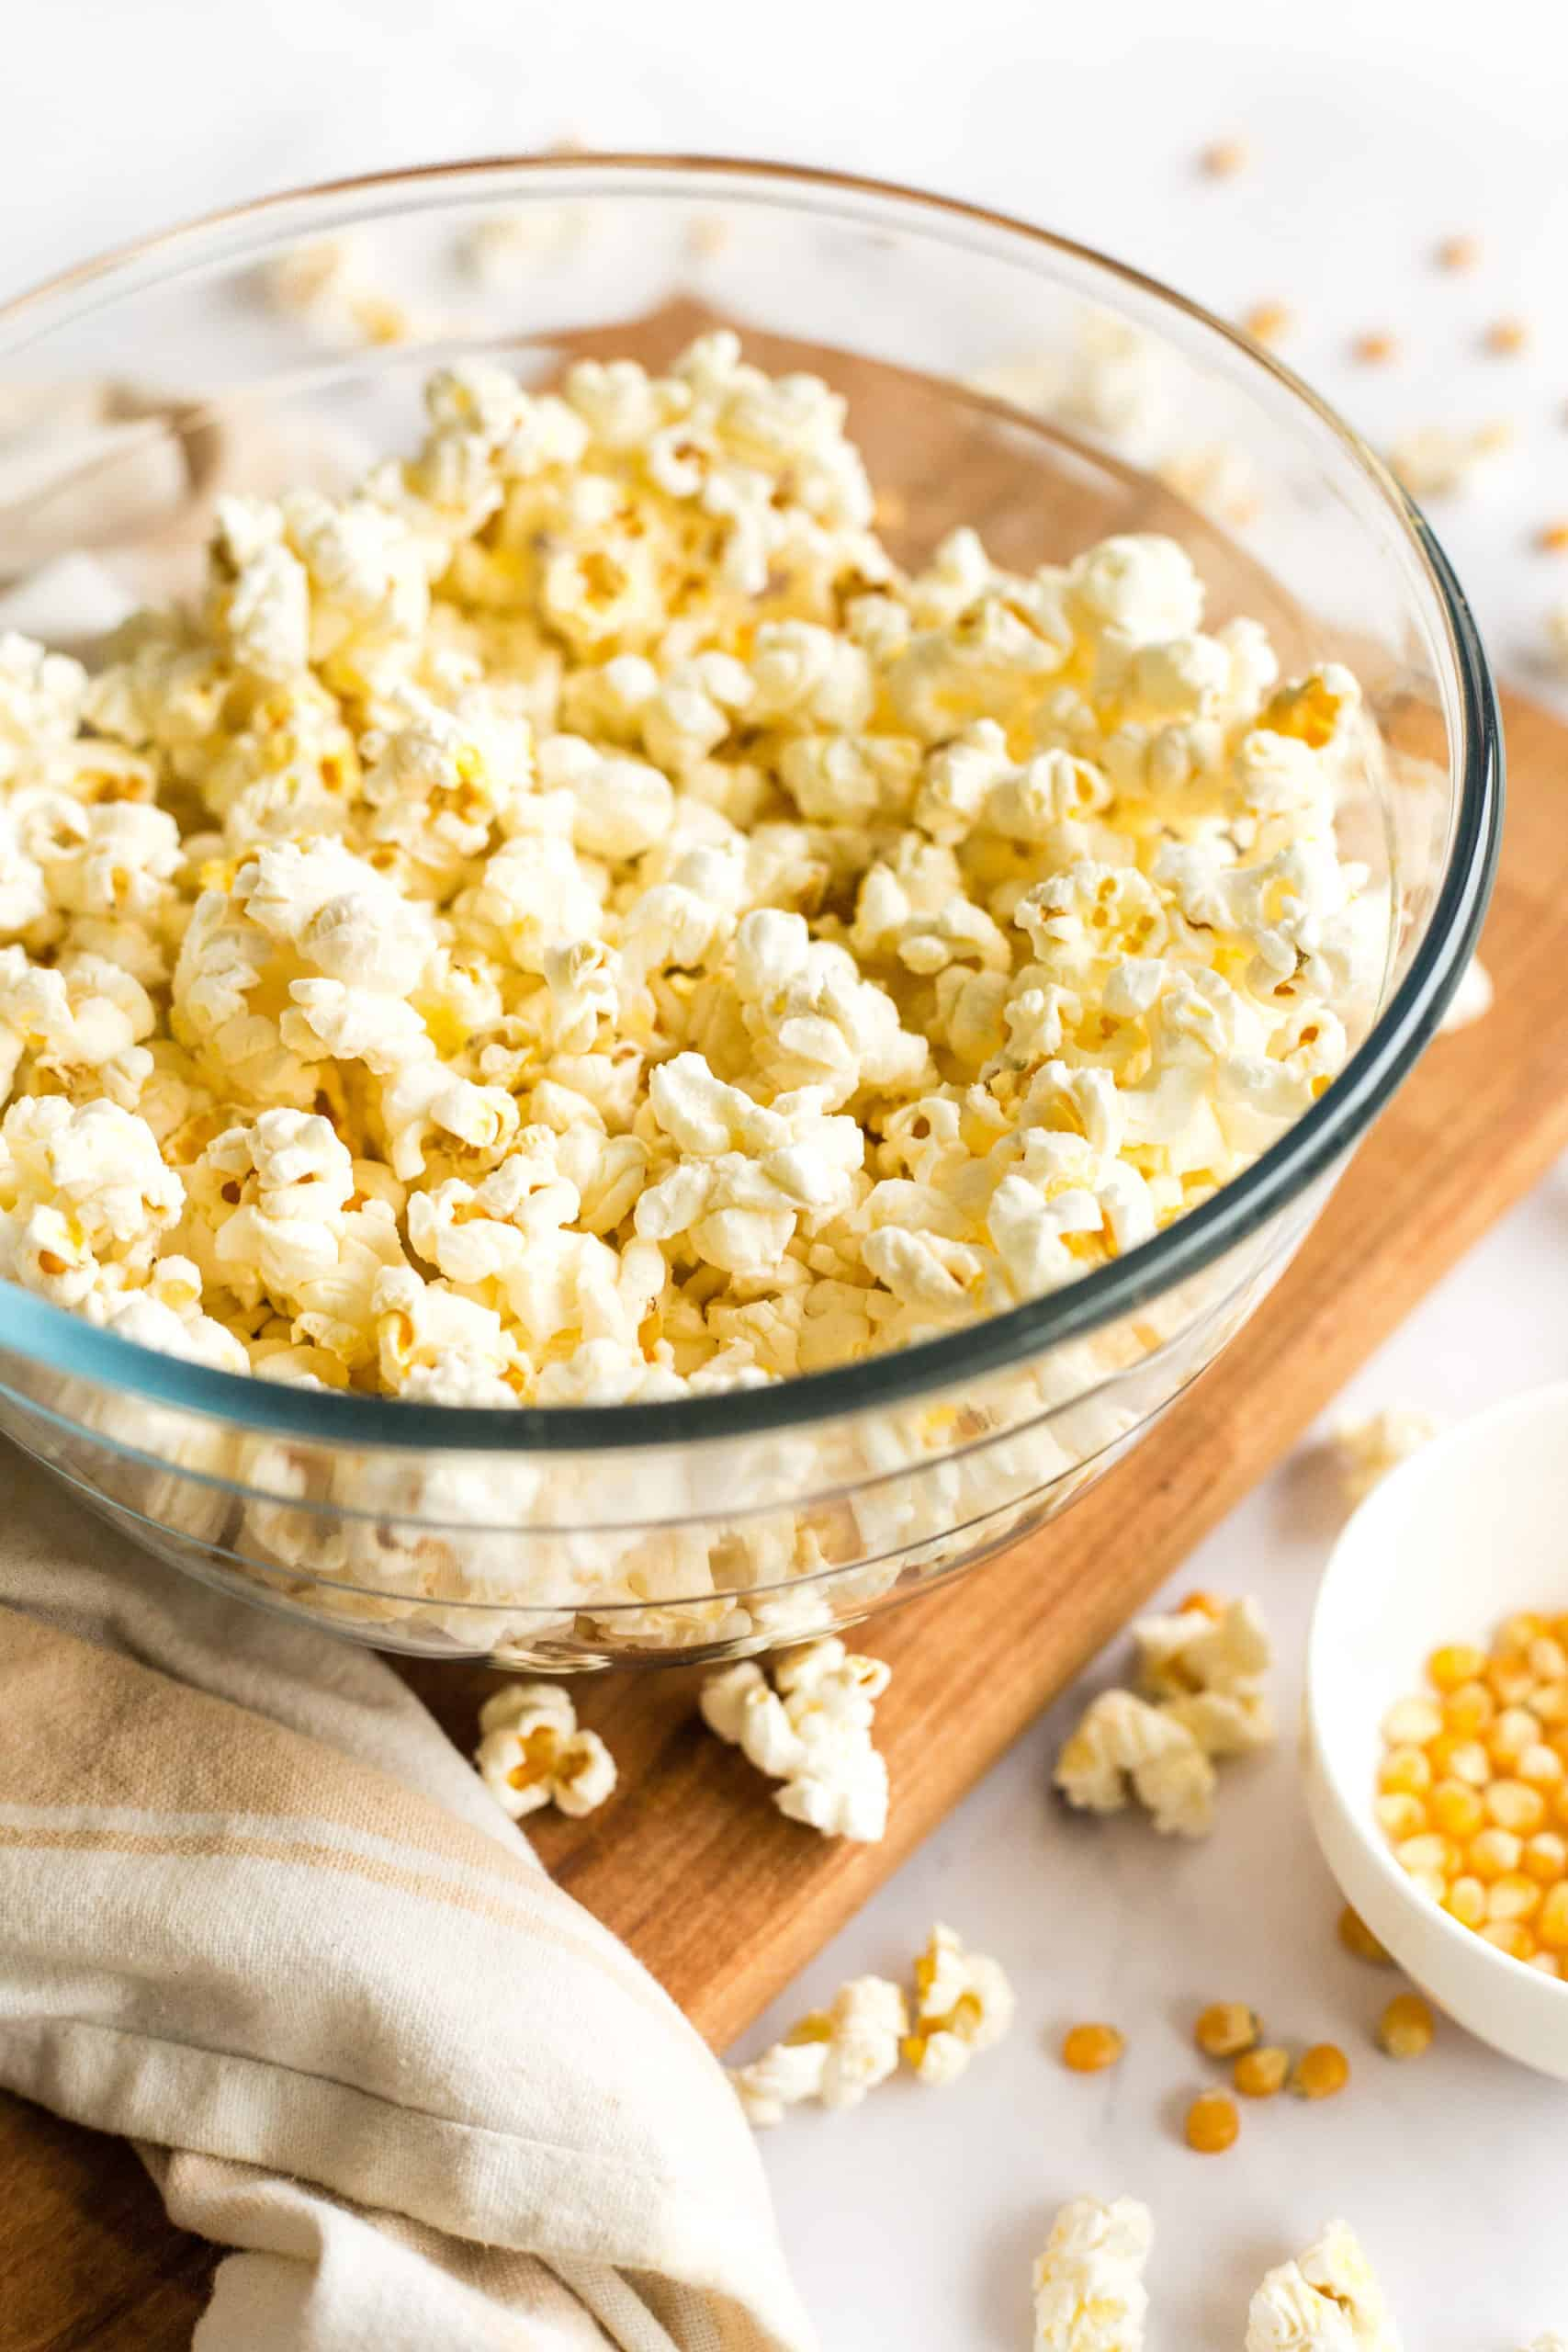 Freshly made popcorn in a glass bowl on a wooden board.